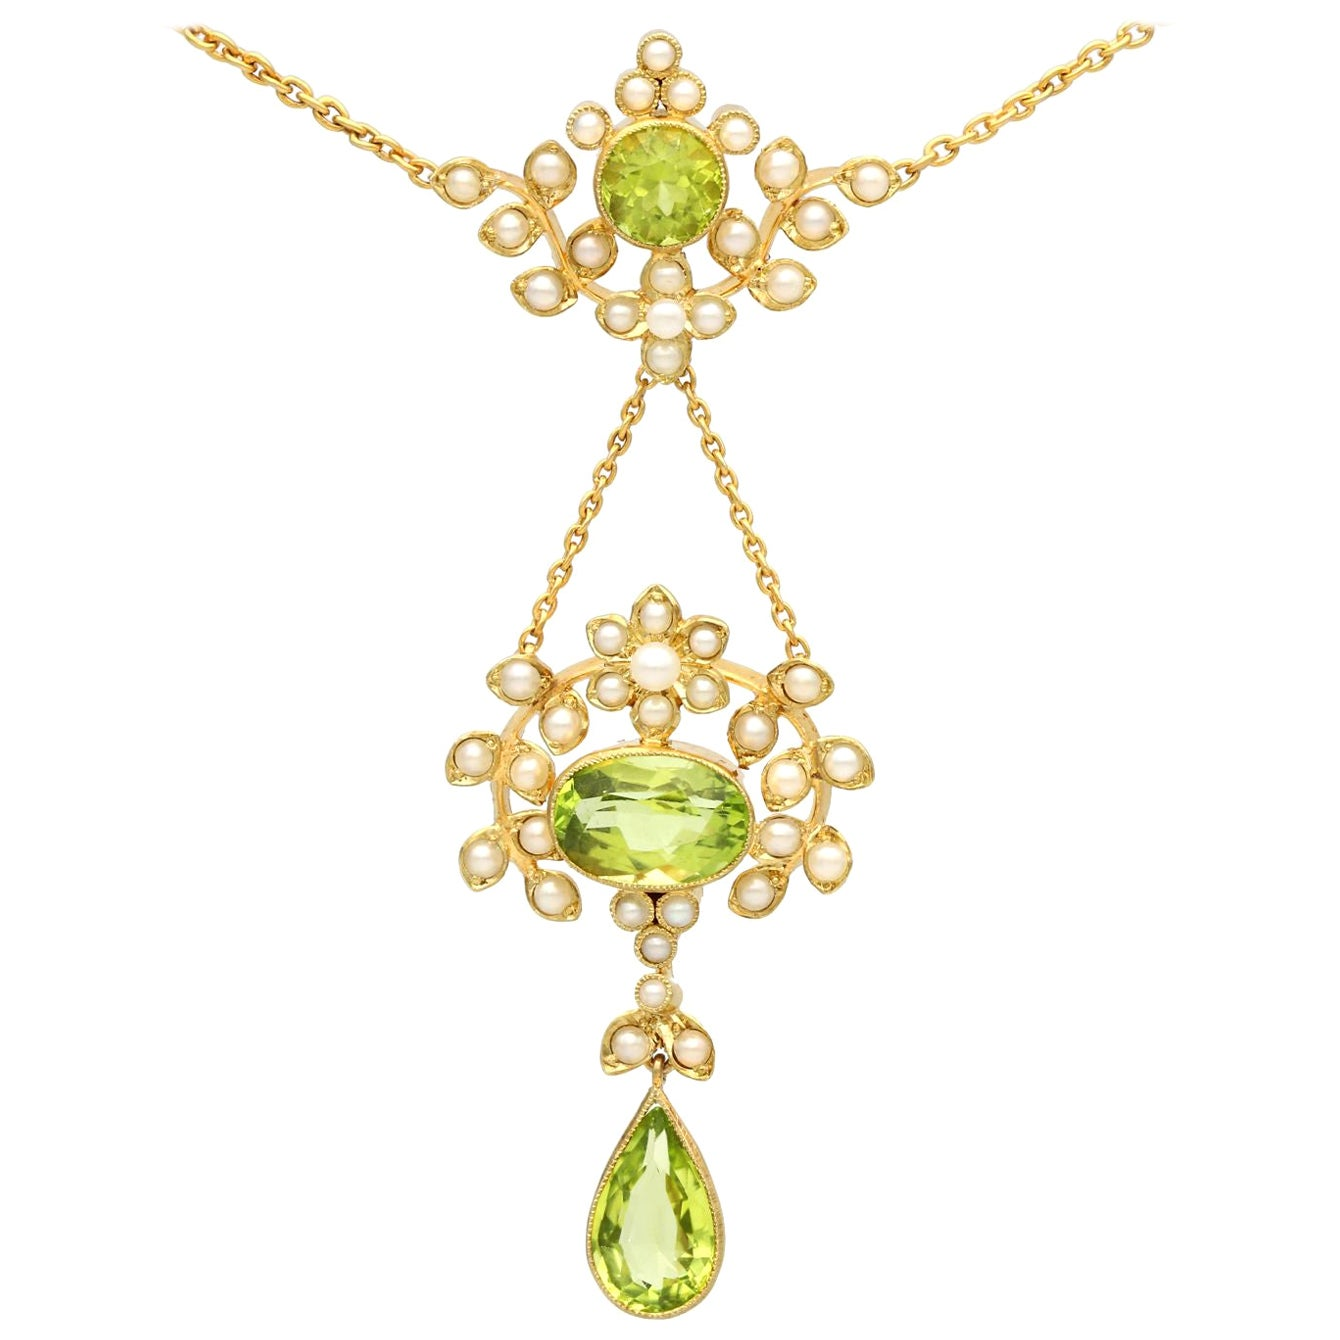 1920s Antique 3.43 Carat Peridot and Seed Pearl Yellow Gold Necklace